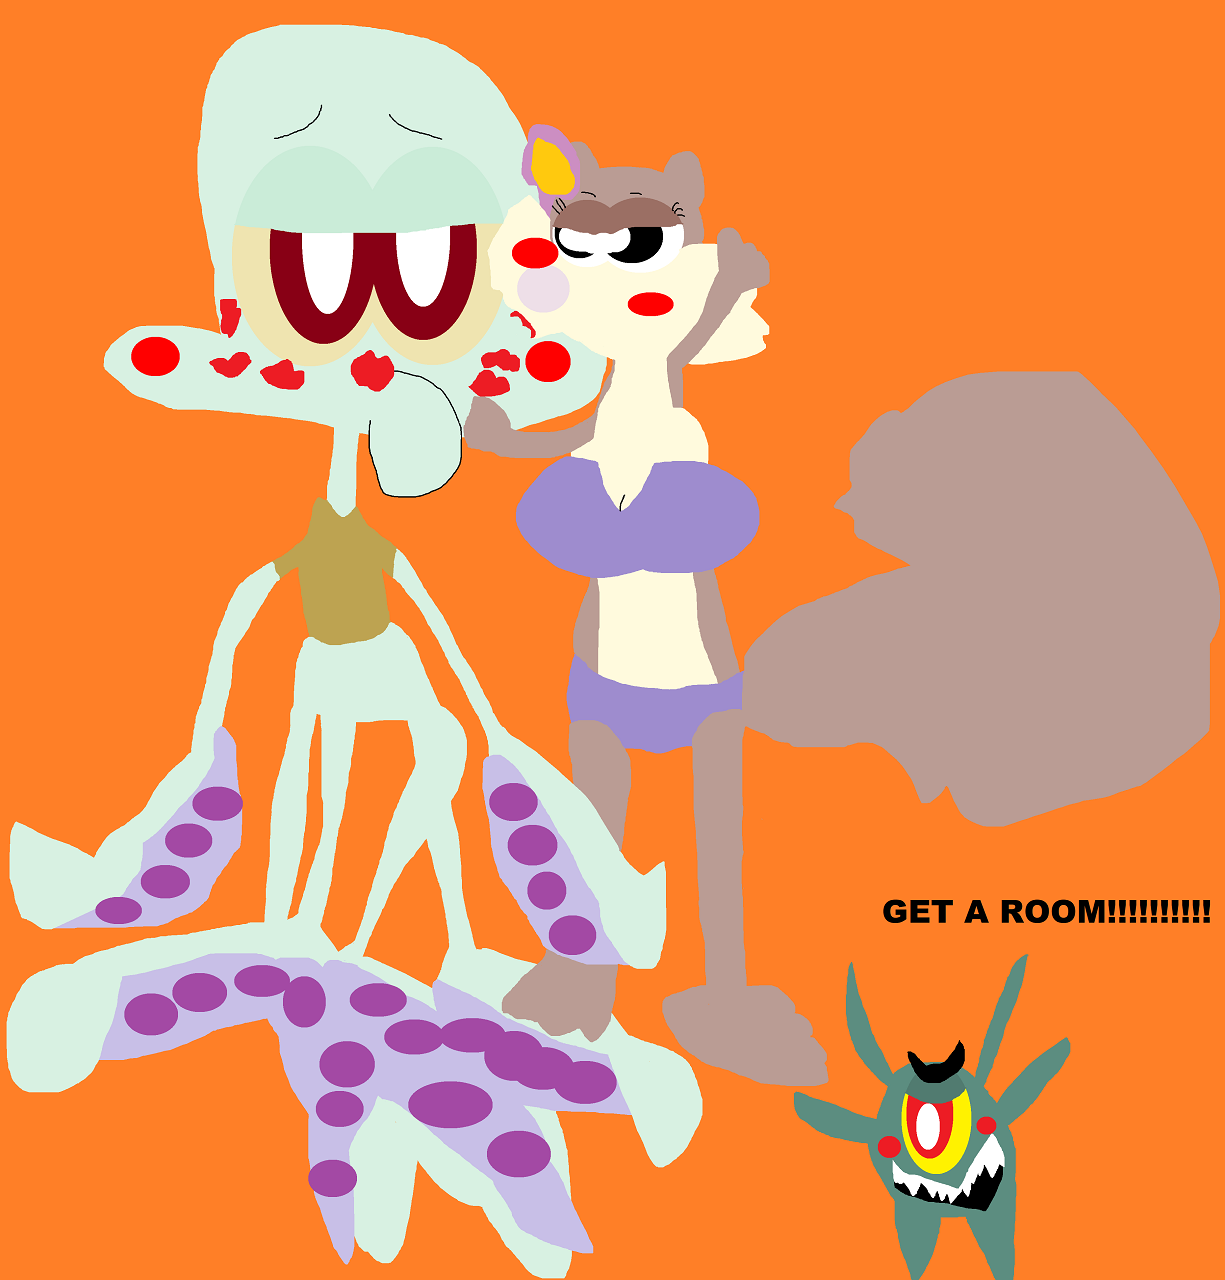 Sandy Smothering Squidward With Kisses Alt For sonokoa162 by Falconlobo